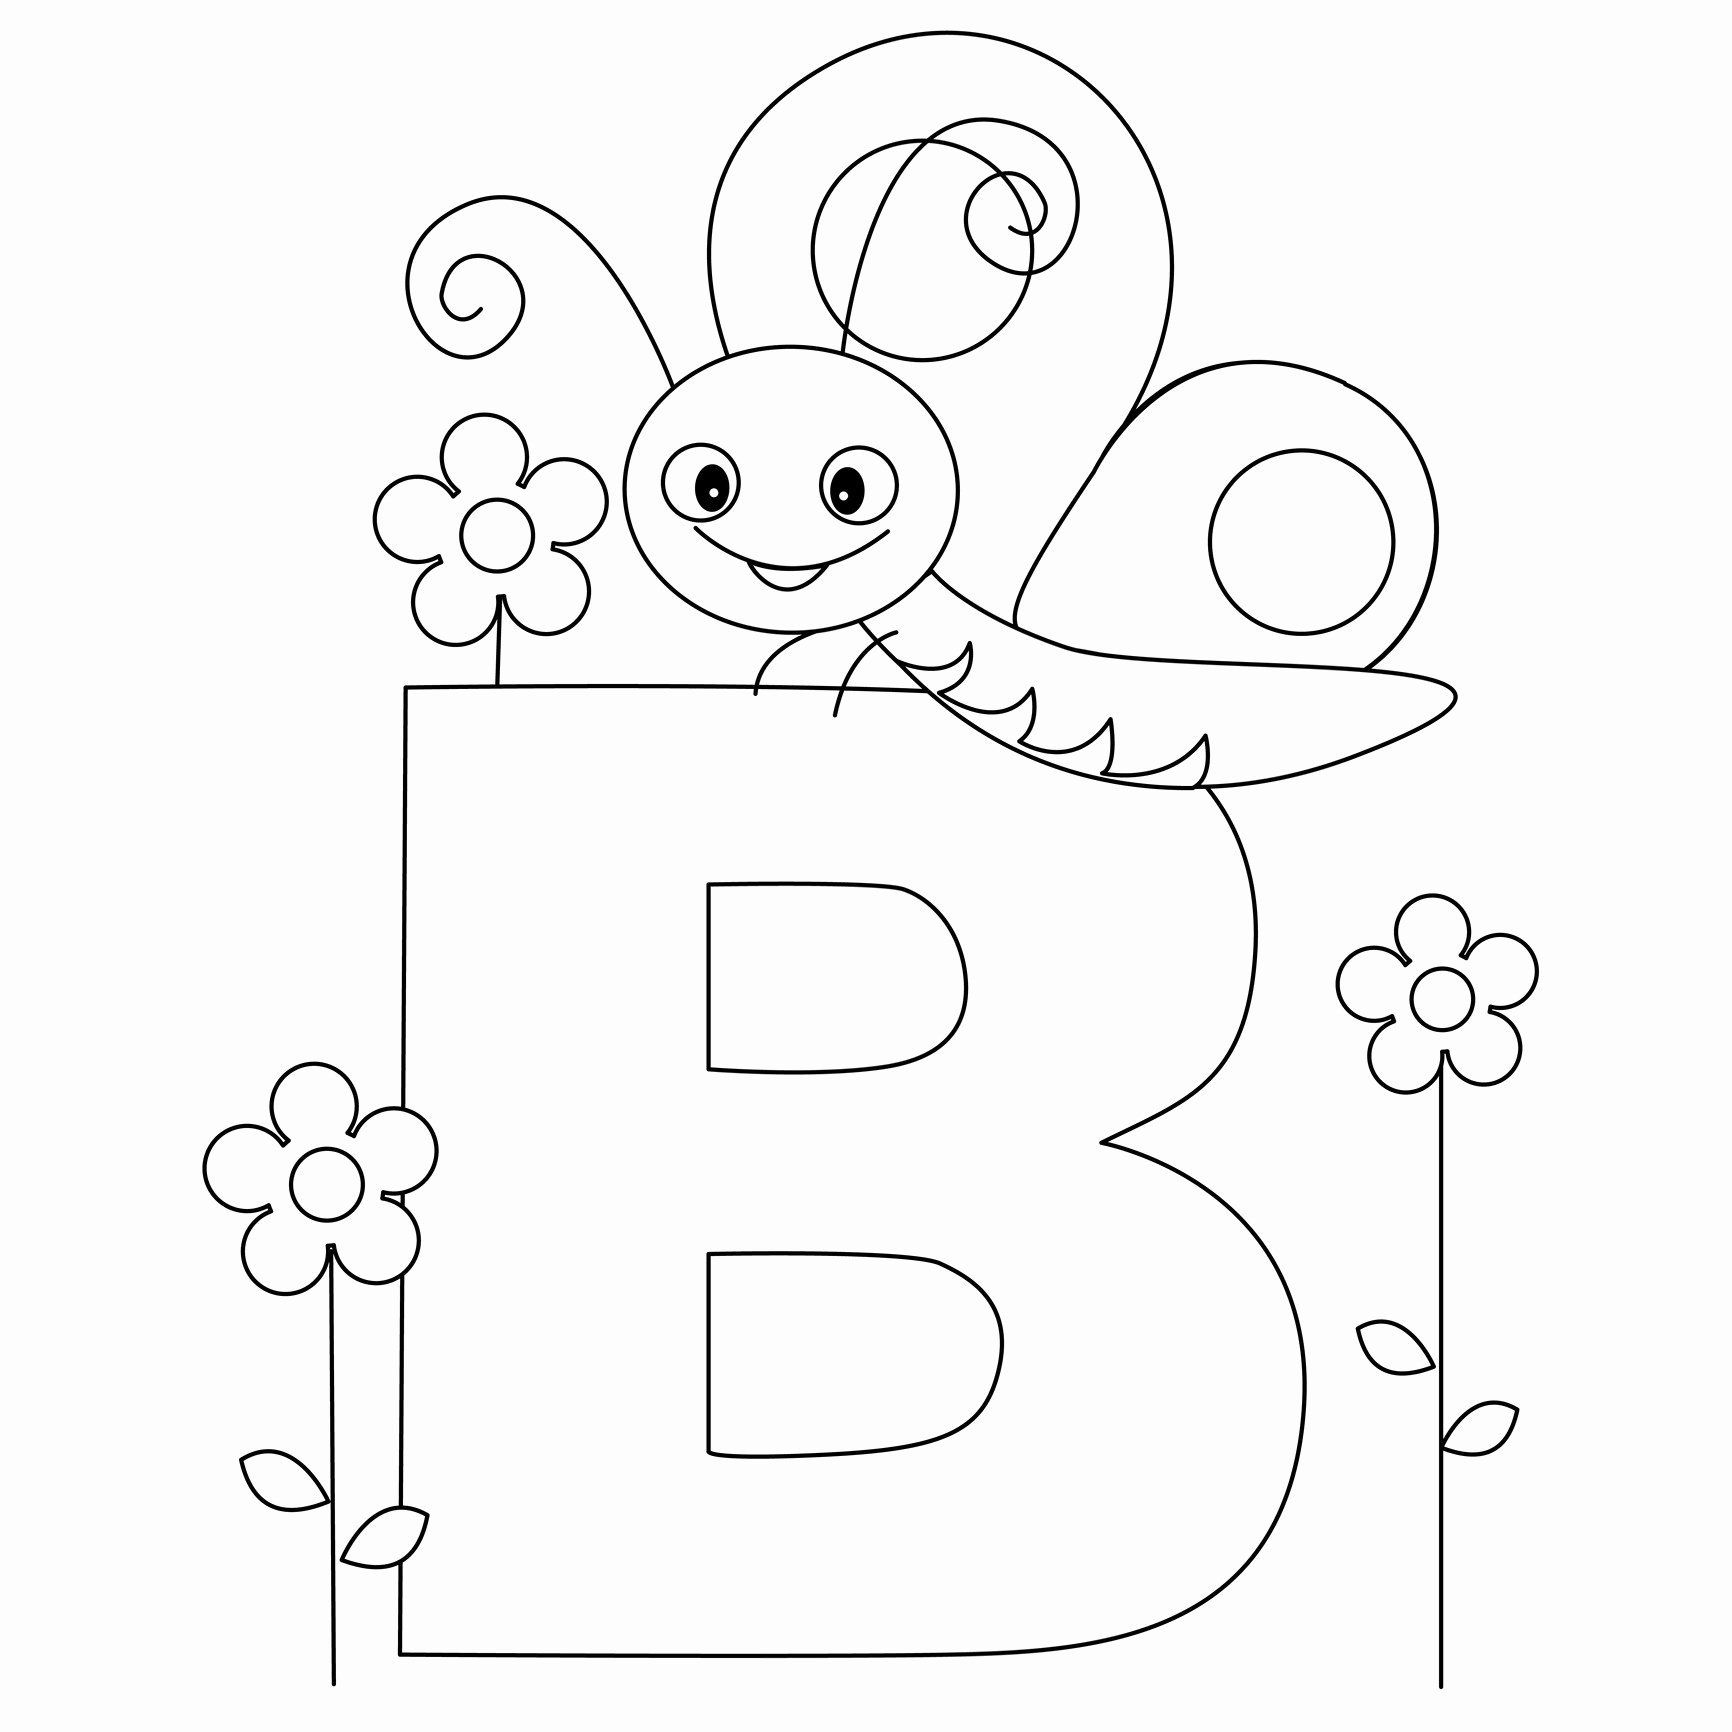 Alphabet Coloring Book Printable Pdf Awesome Animal Alphabet Coloring Pages Free Album Kindergarten Coloring Pages Butterfly Coloring Page Coloring Letters